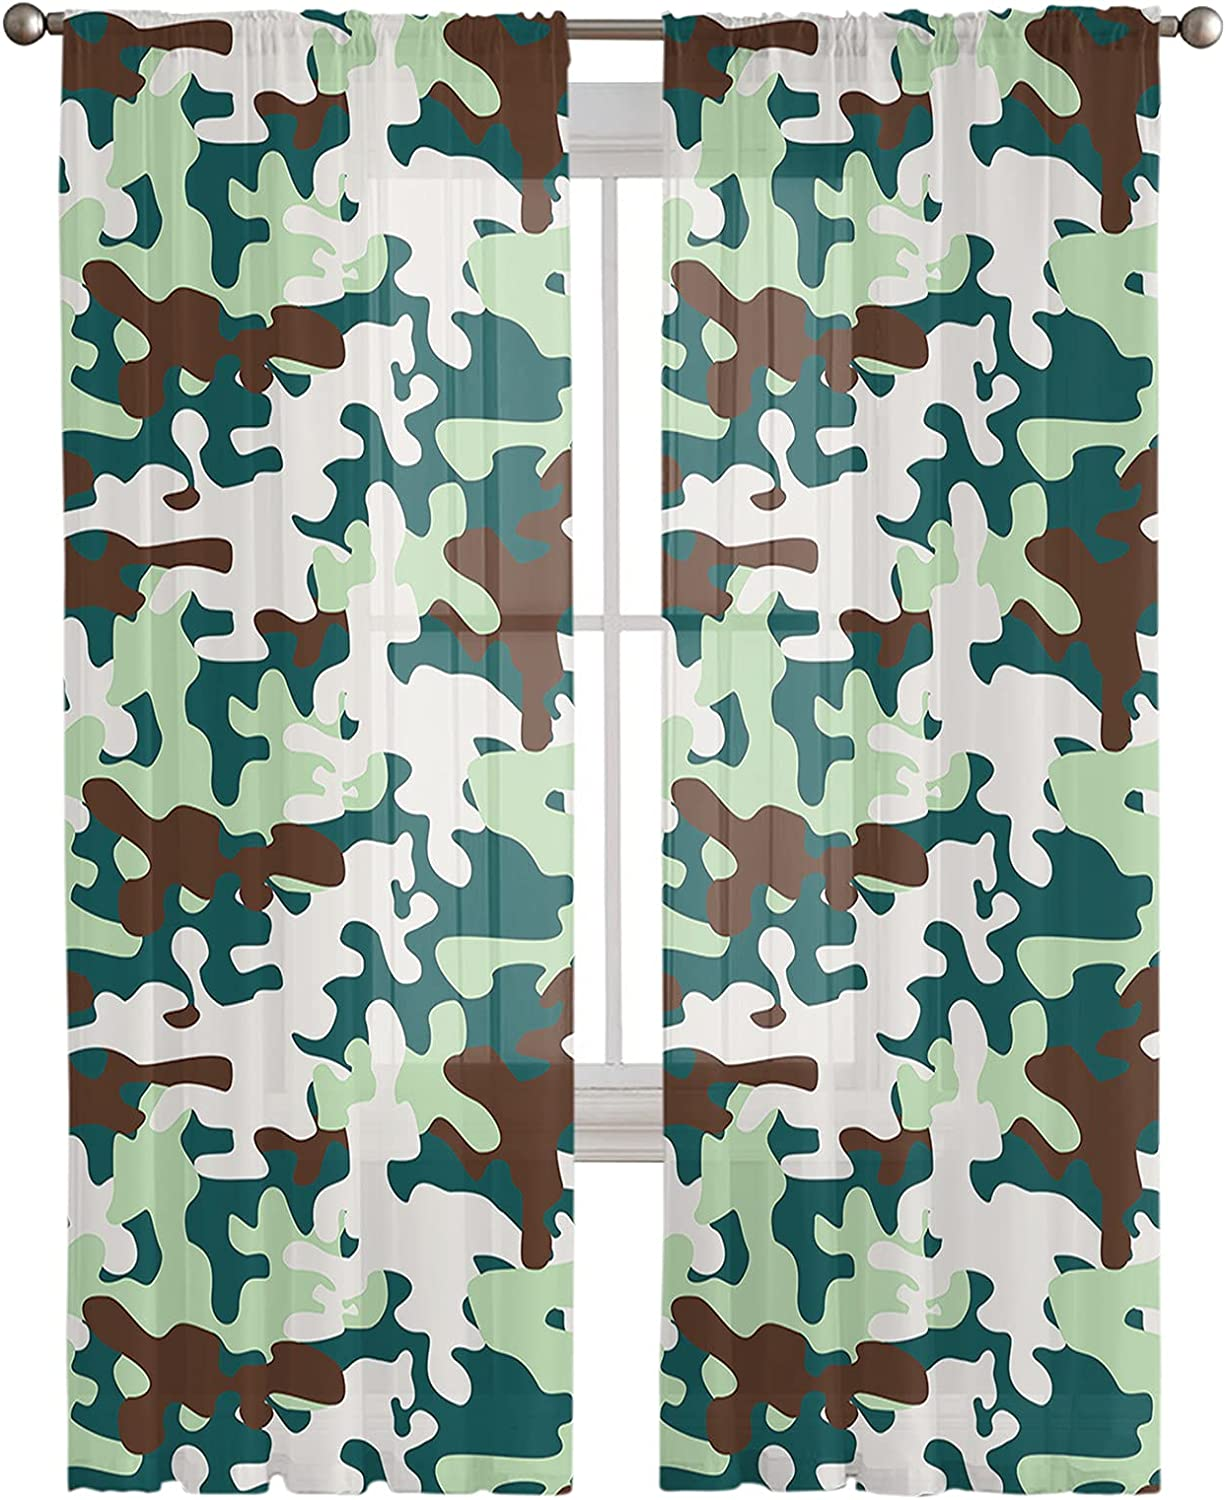 Max 63% OFF Camouflage Sheer Curtains 2 Panels Light Privacy Curt Filtering Ranking TOP5